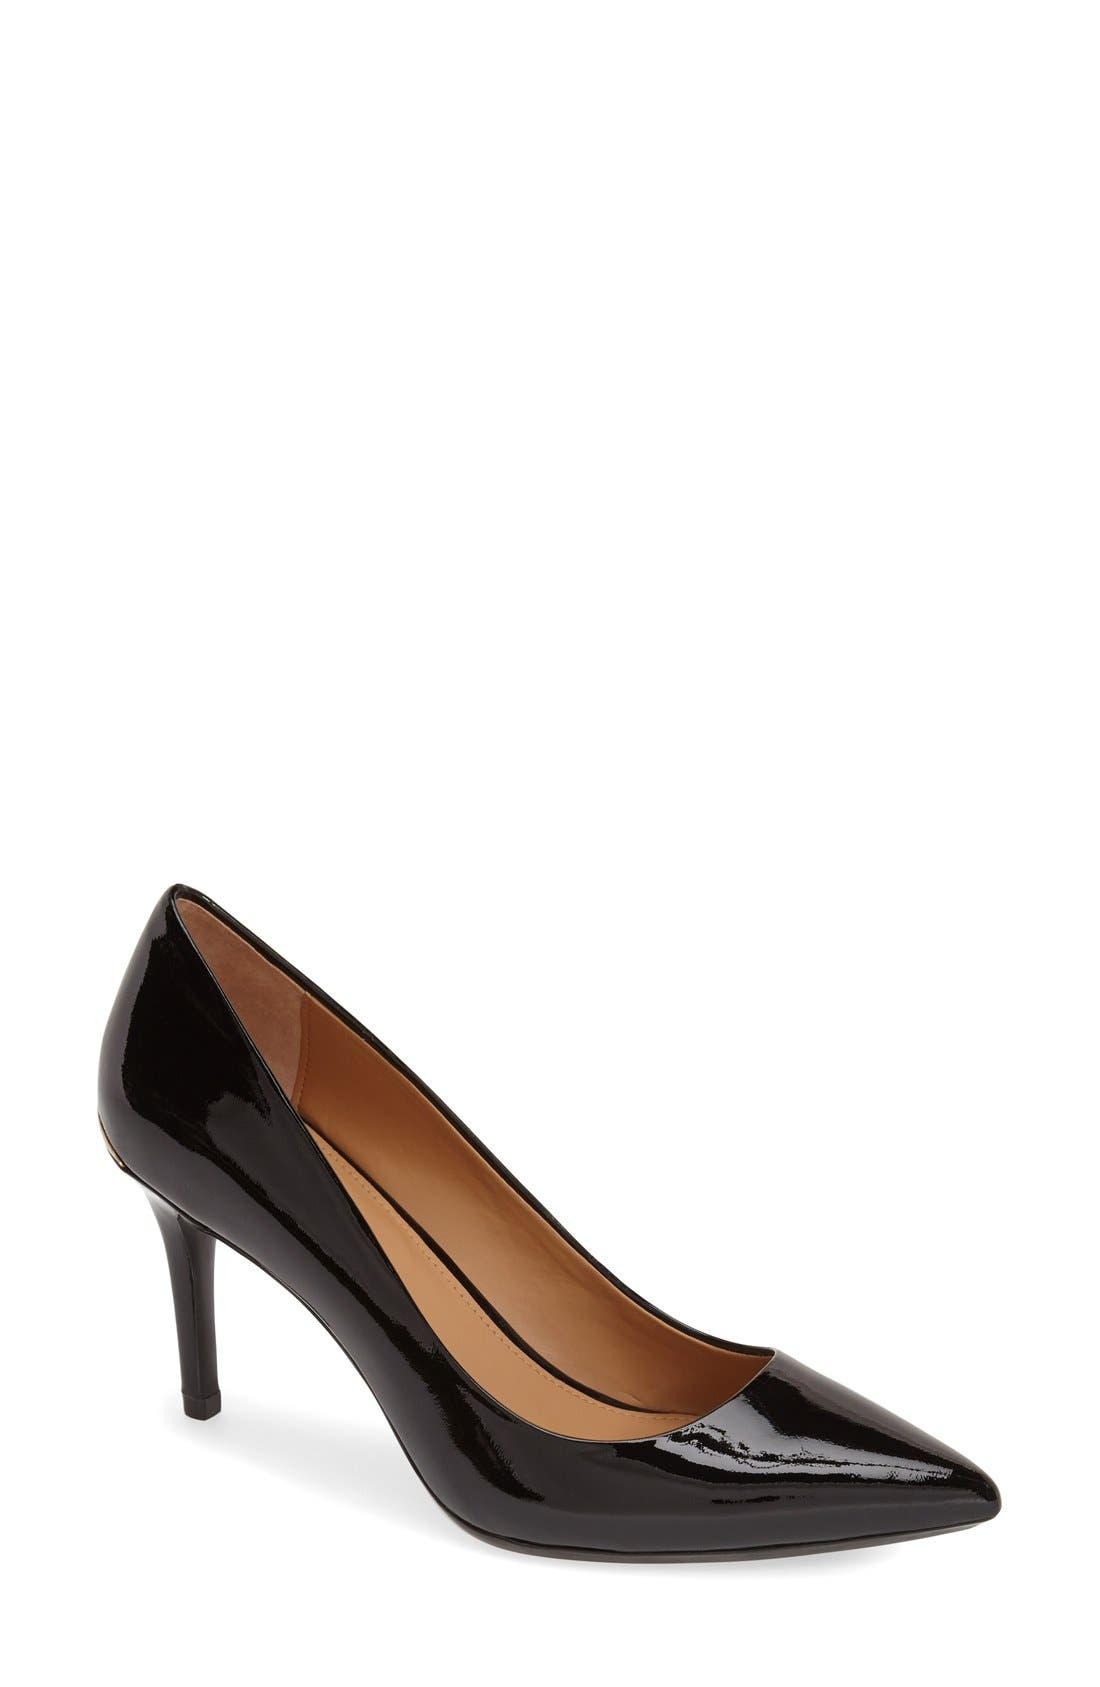 'Gayle' Pointy Toe Pump,                             Main thumbnail 1, color,                             BLACK PATENT